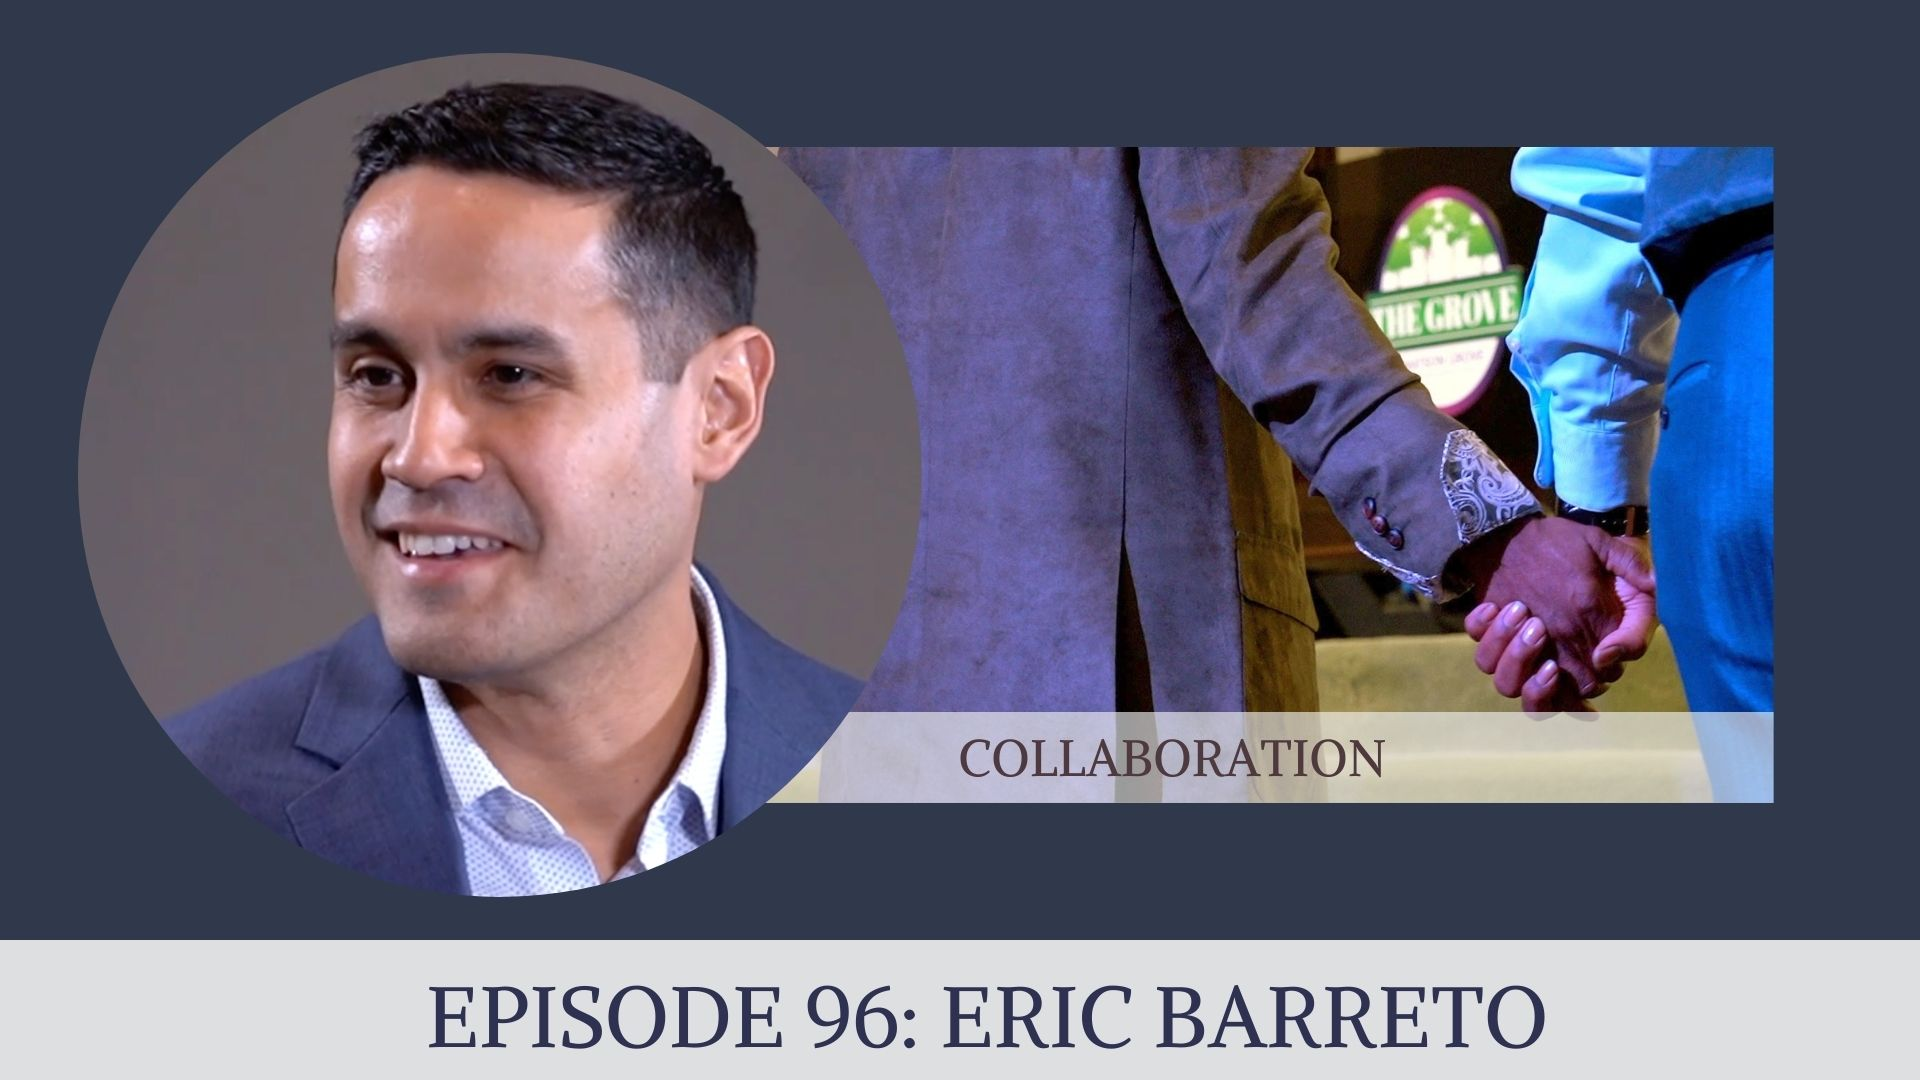 Eric Barreto on Collaboration